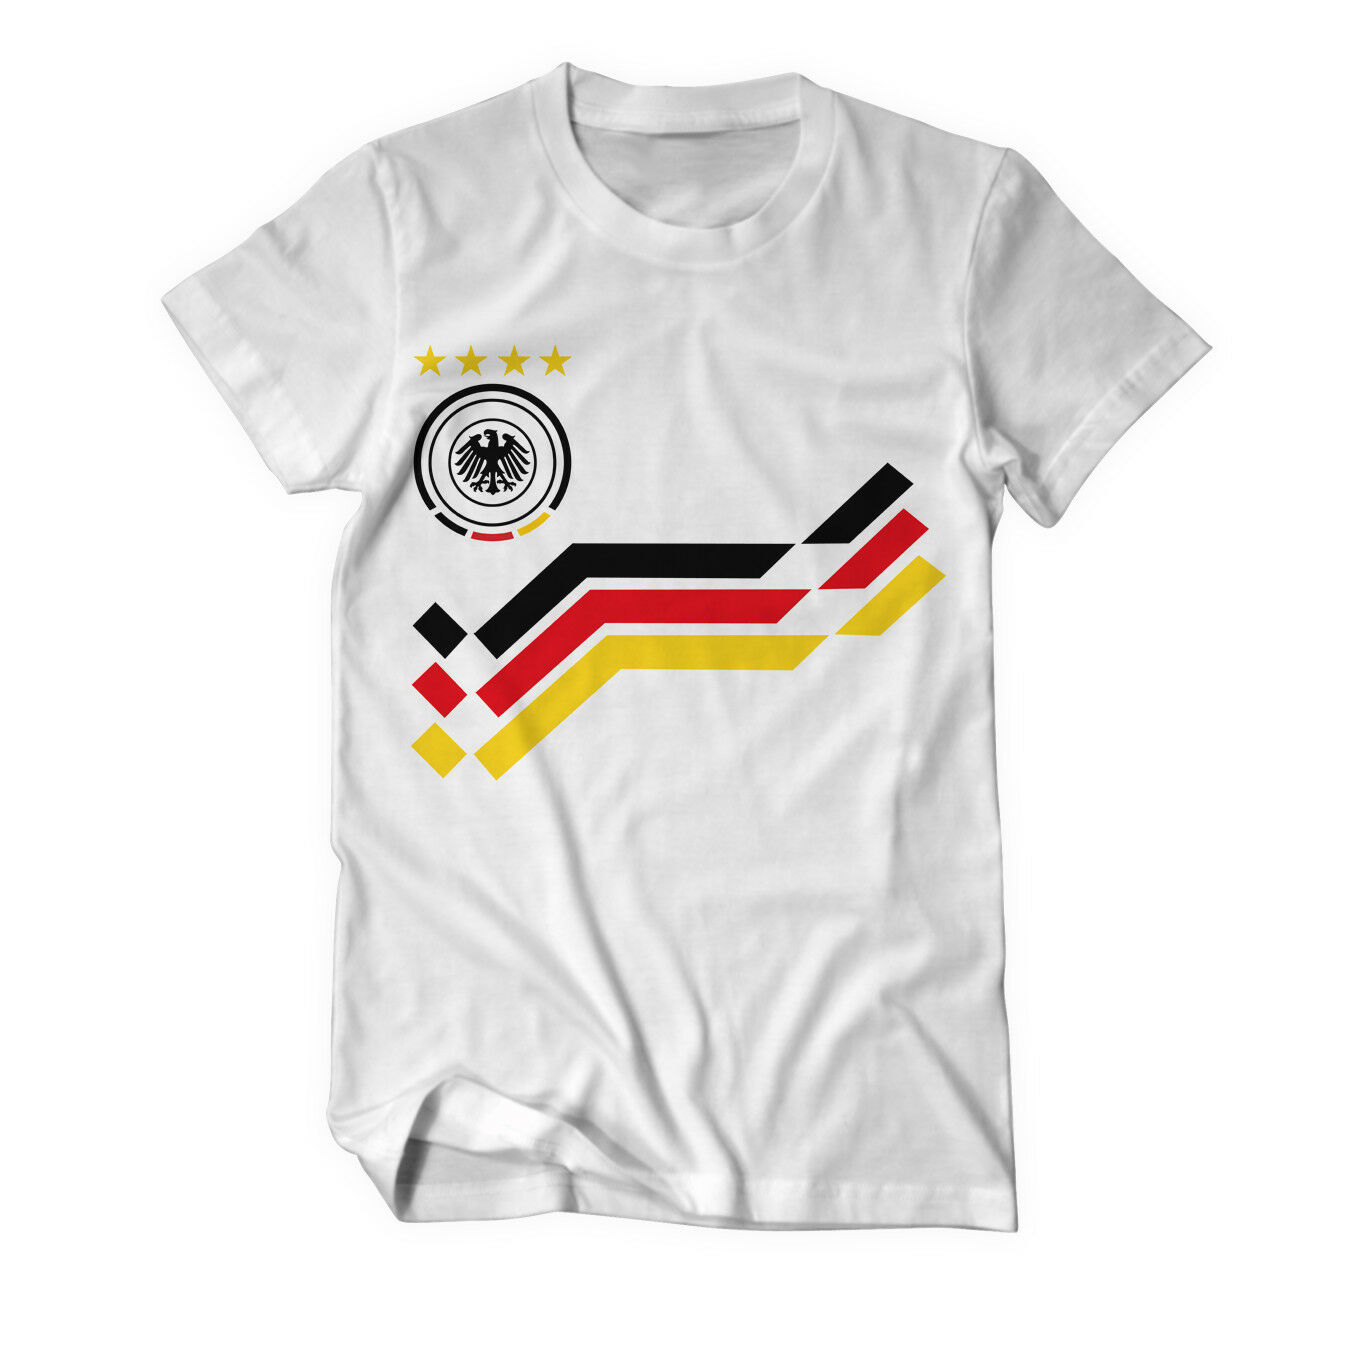 deutschland em wm trikot retro t shirt national turnier mannschaft eur 8 88 picclick de. Black Bedroom Furniture Sets. Home Design Ideas